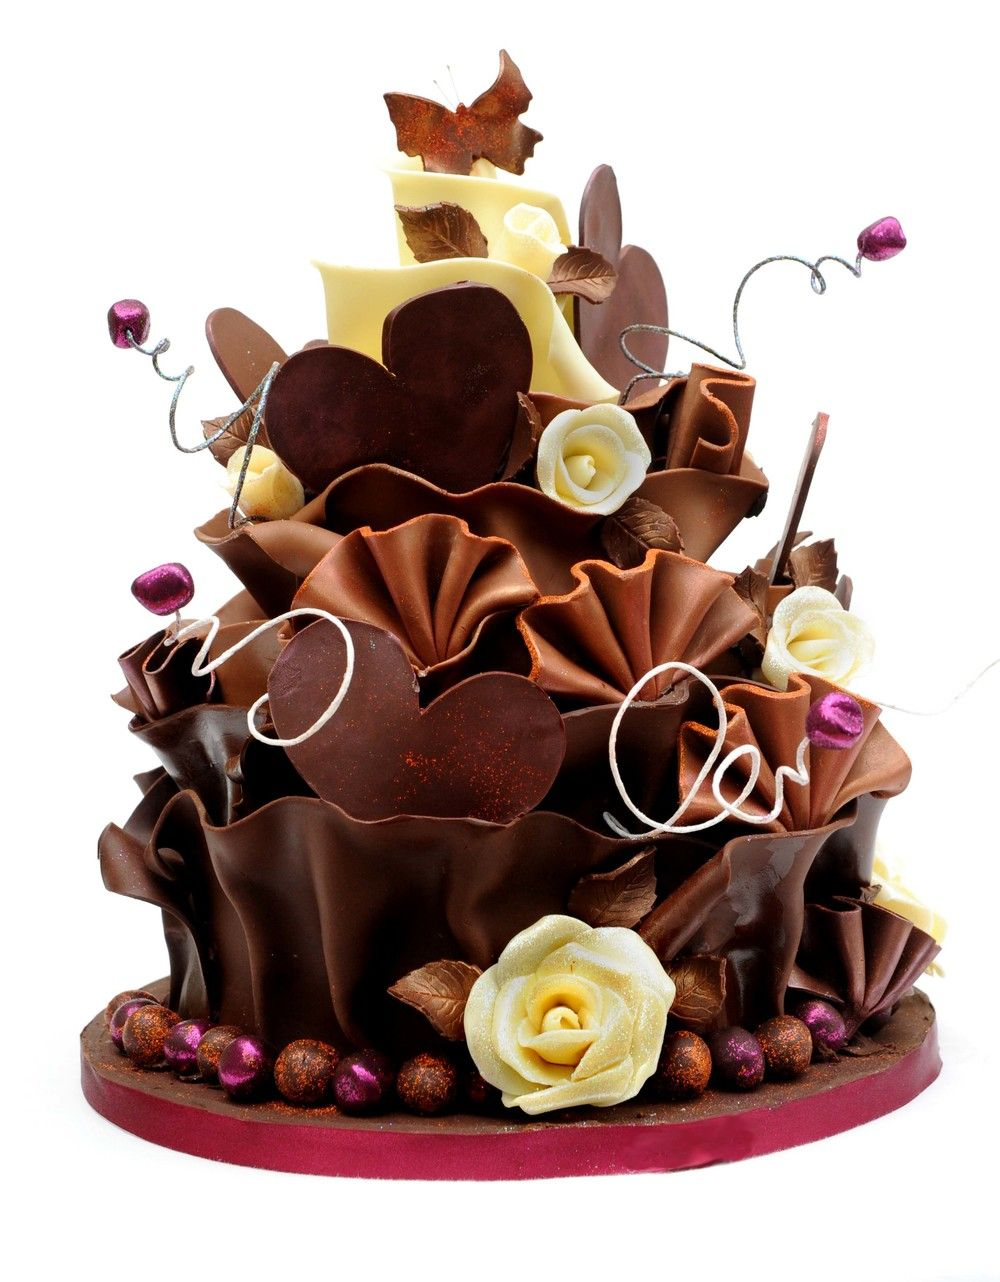 Most Beautiful Chocolate Birthday Cakes Ever Most beautiful ...